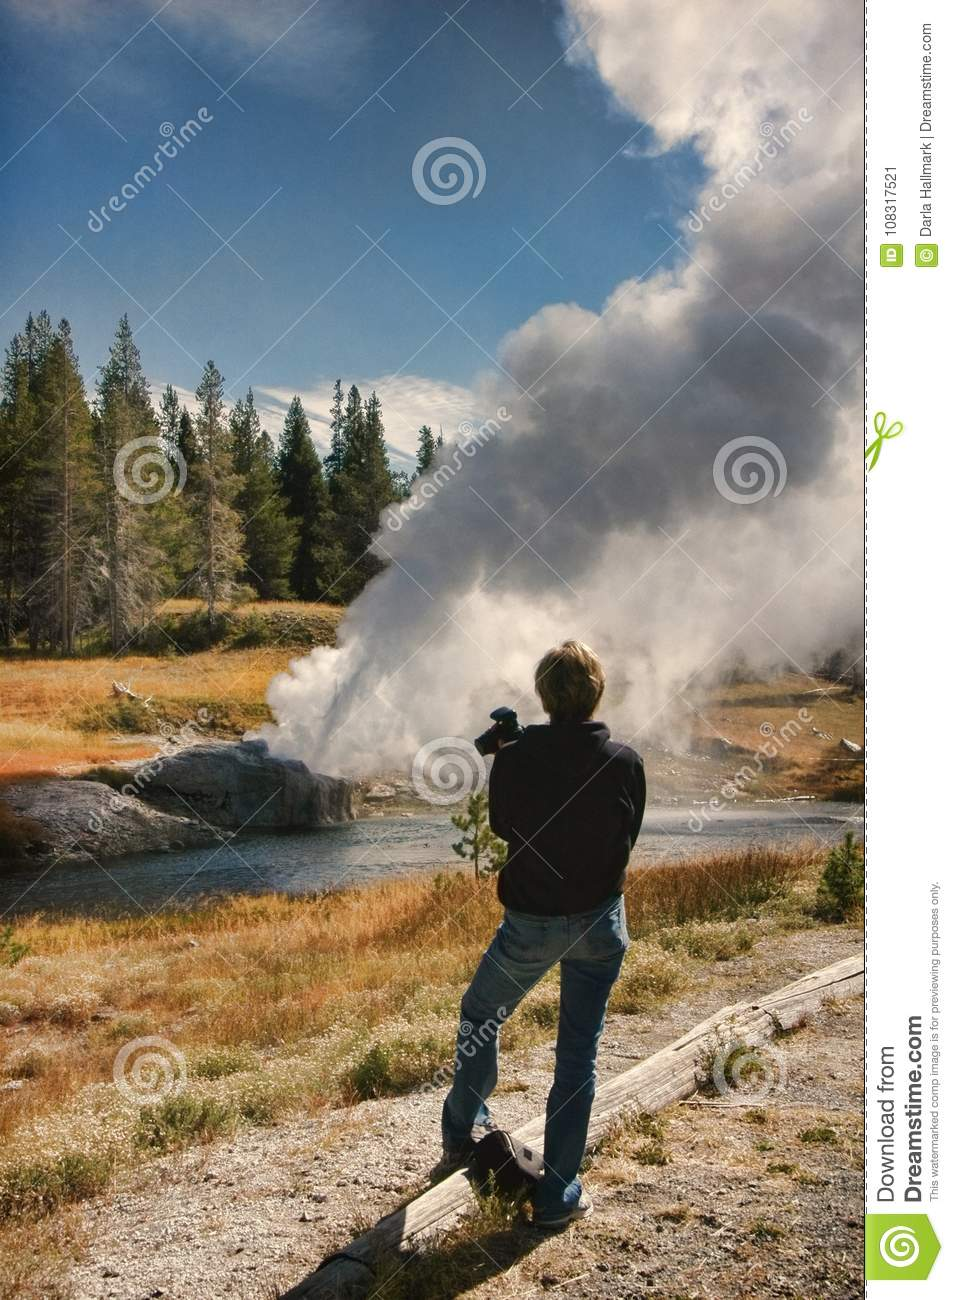 Idea Watching the geyser